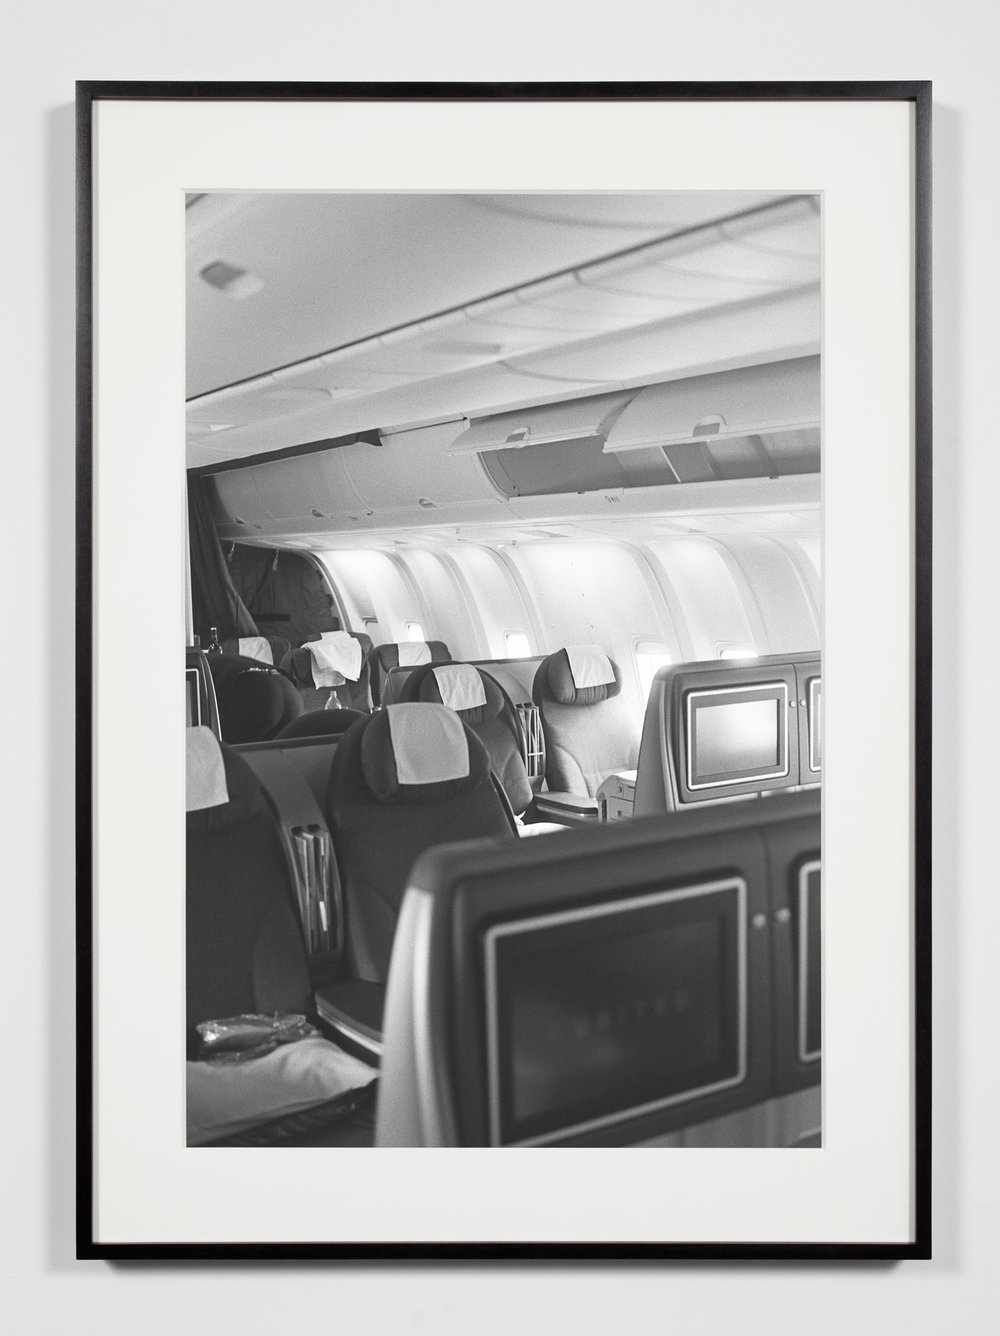 Business Class Cabin, Moscow, Russia, May 17, 2009    2011   Epson Ultrachrome K3 archival ink jet print on Hahnemühle Photo Rag paper  36 3/8 x 26 3/8 inches   A Diagram of Forces, 2011